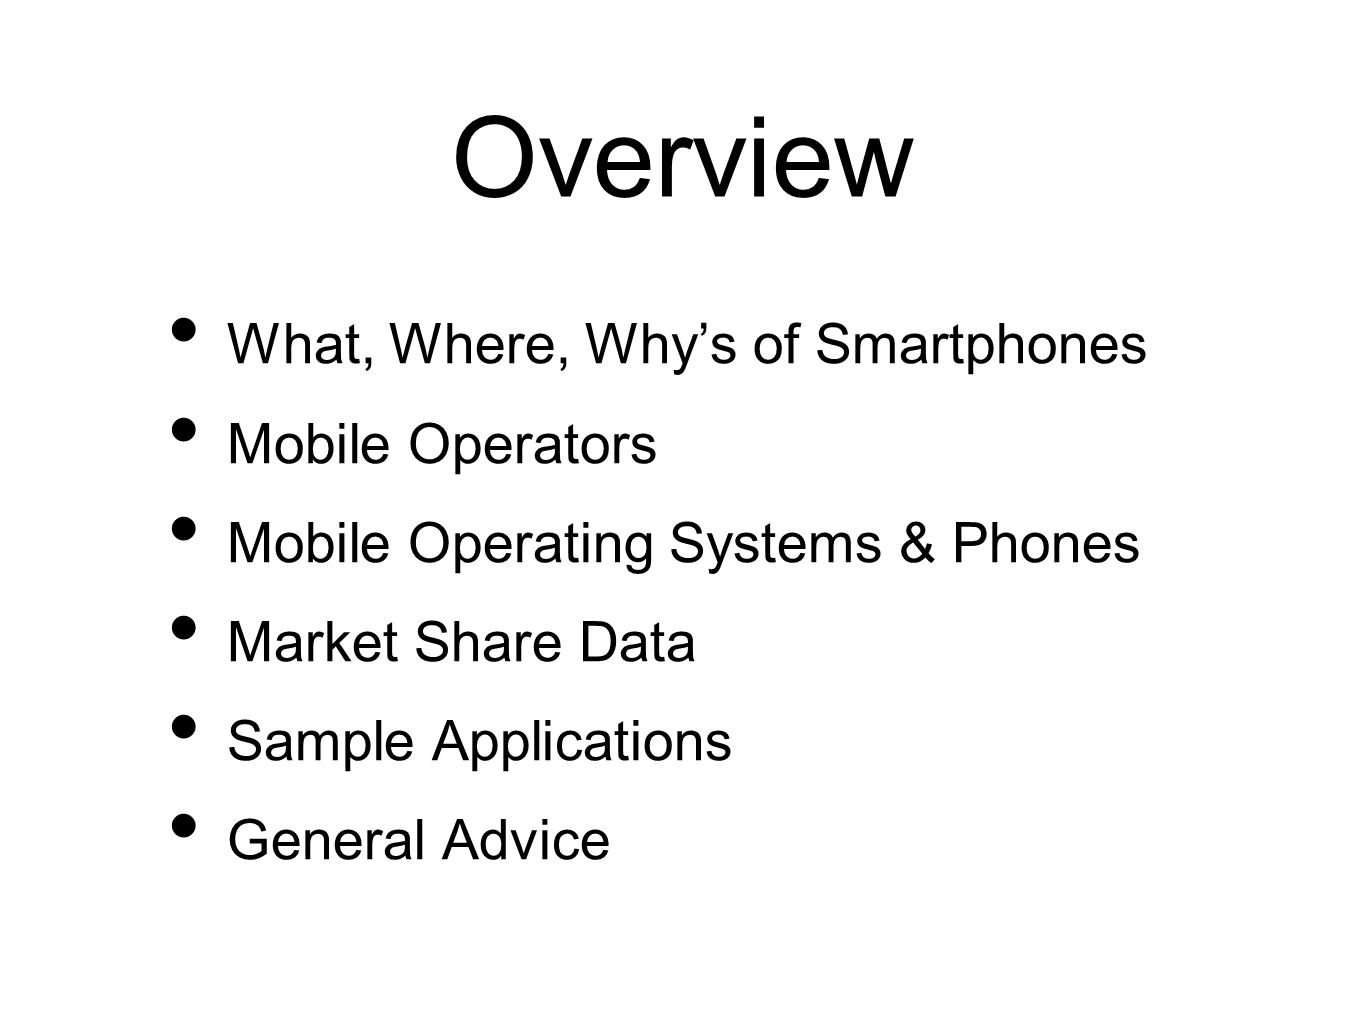 Overview What, Where, Whys of Smartphones Mobile Operators Mobile Operating Systems & Phones Market Share Data Sample Applications General Advice